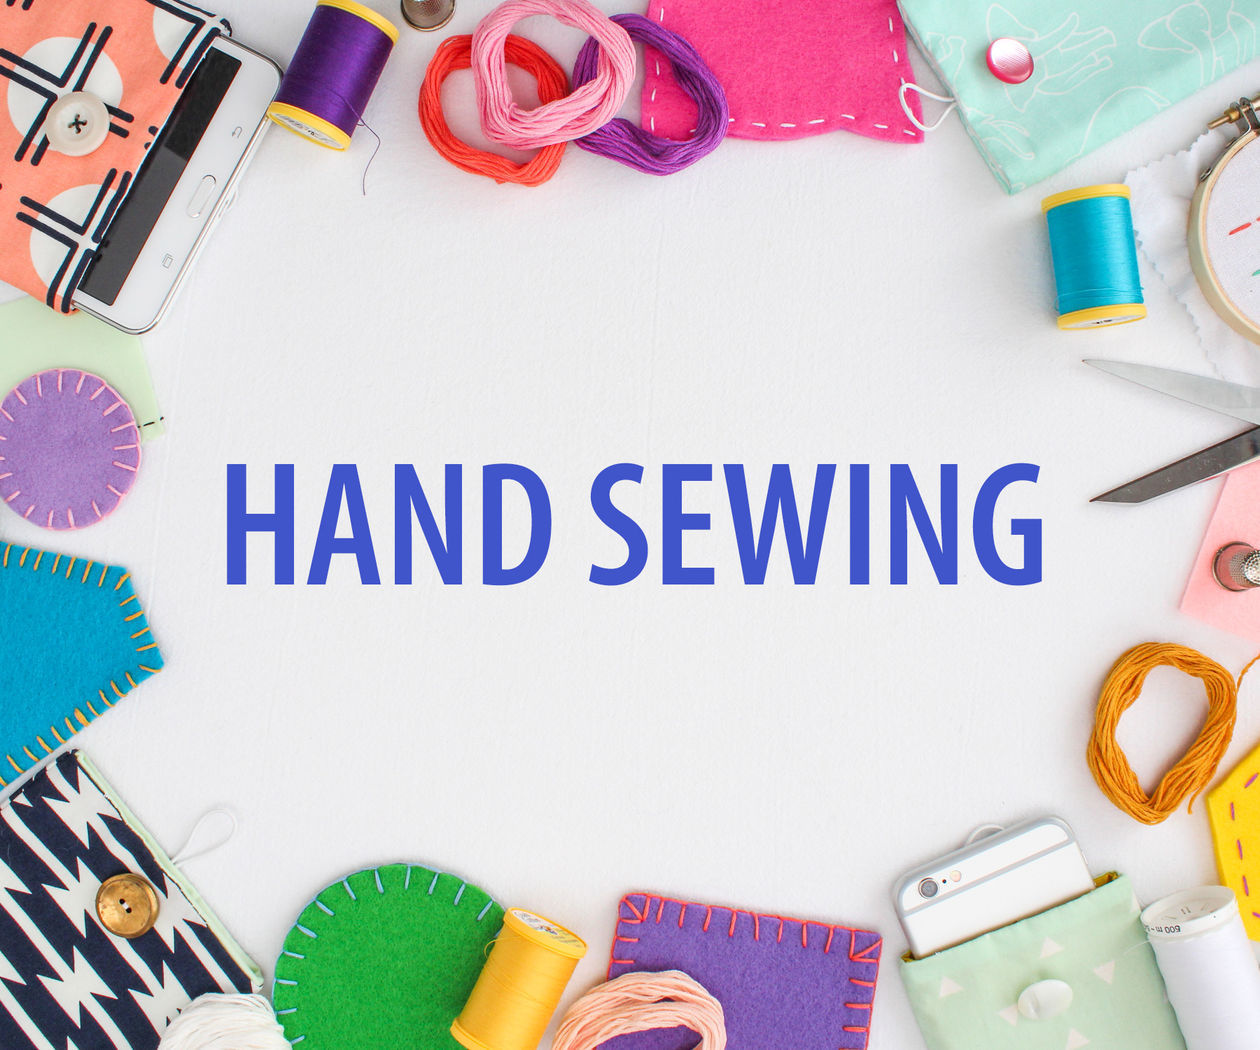 Introduction to Hand Sewing